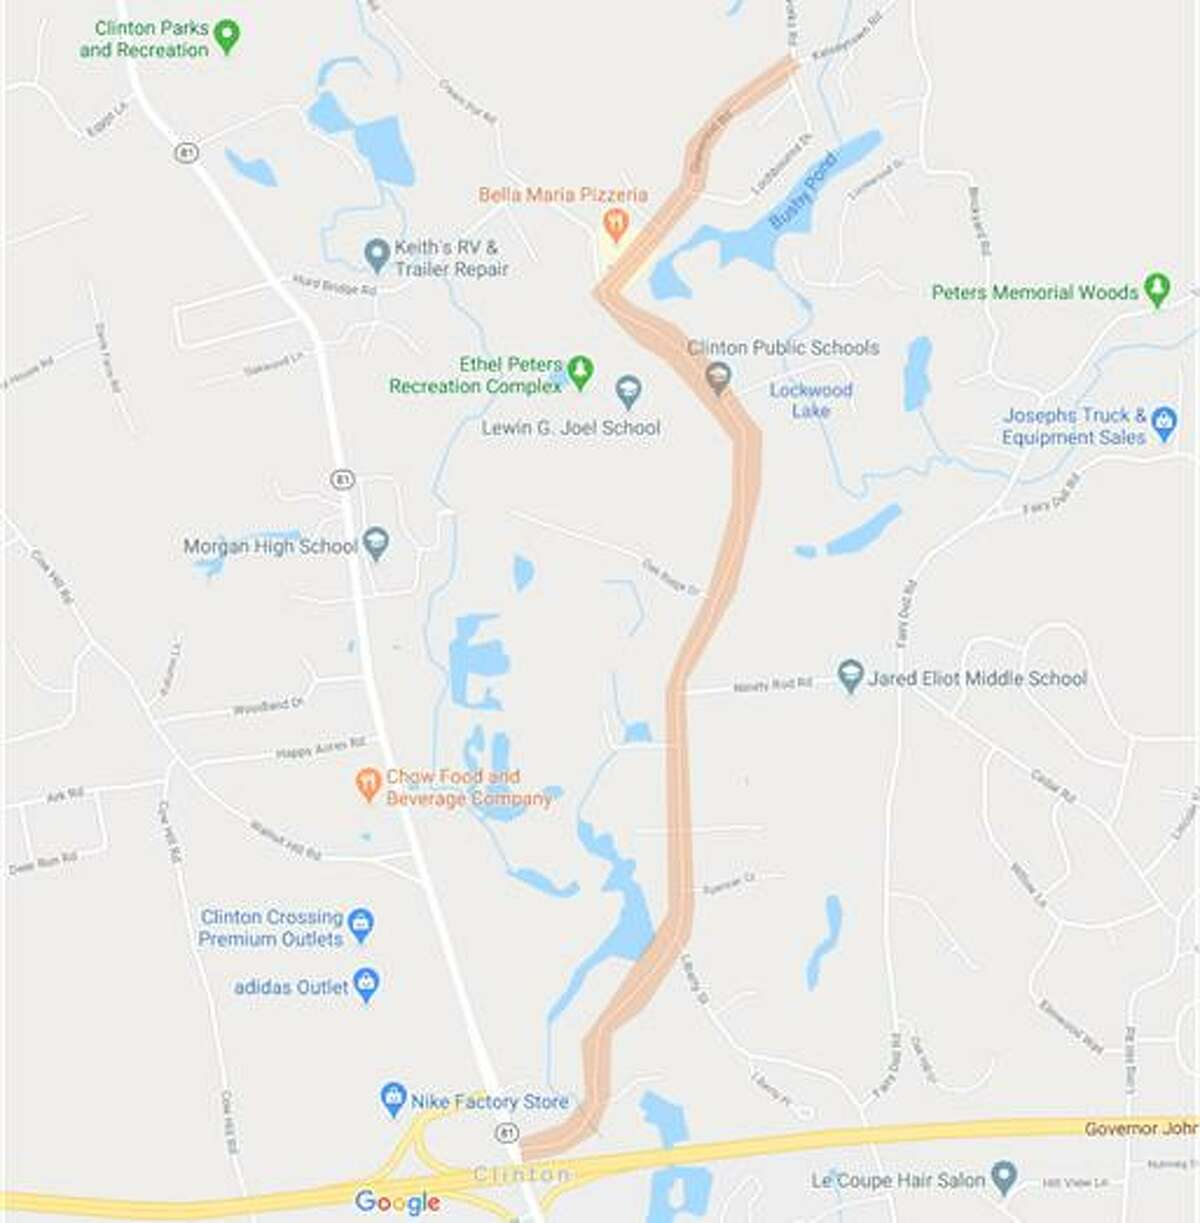 Connecticut Water will be replacing 9,500 feet, or about 1.8 miles, of a 100-year-old water main in Clinton along Glenwood Road between Route 81 and Iron Works Road.